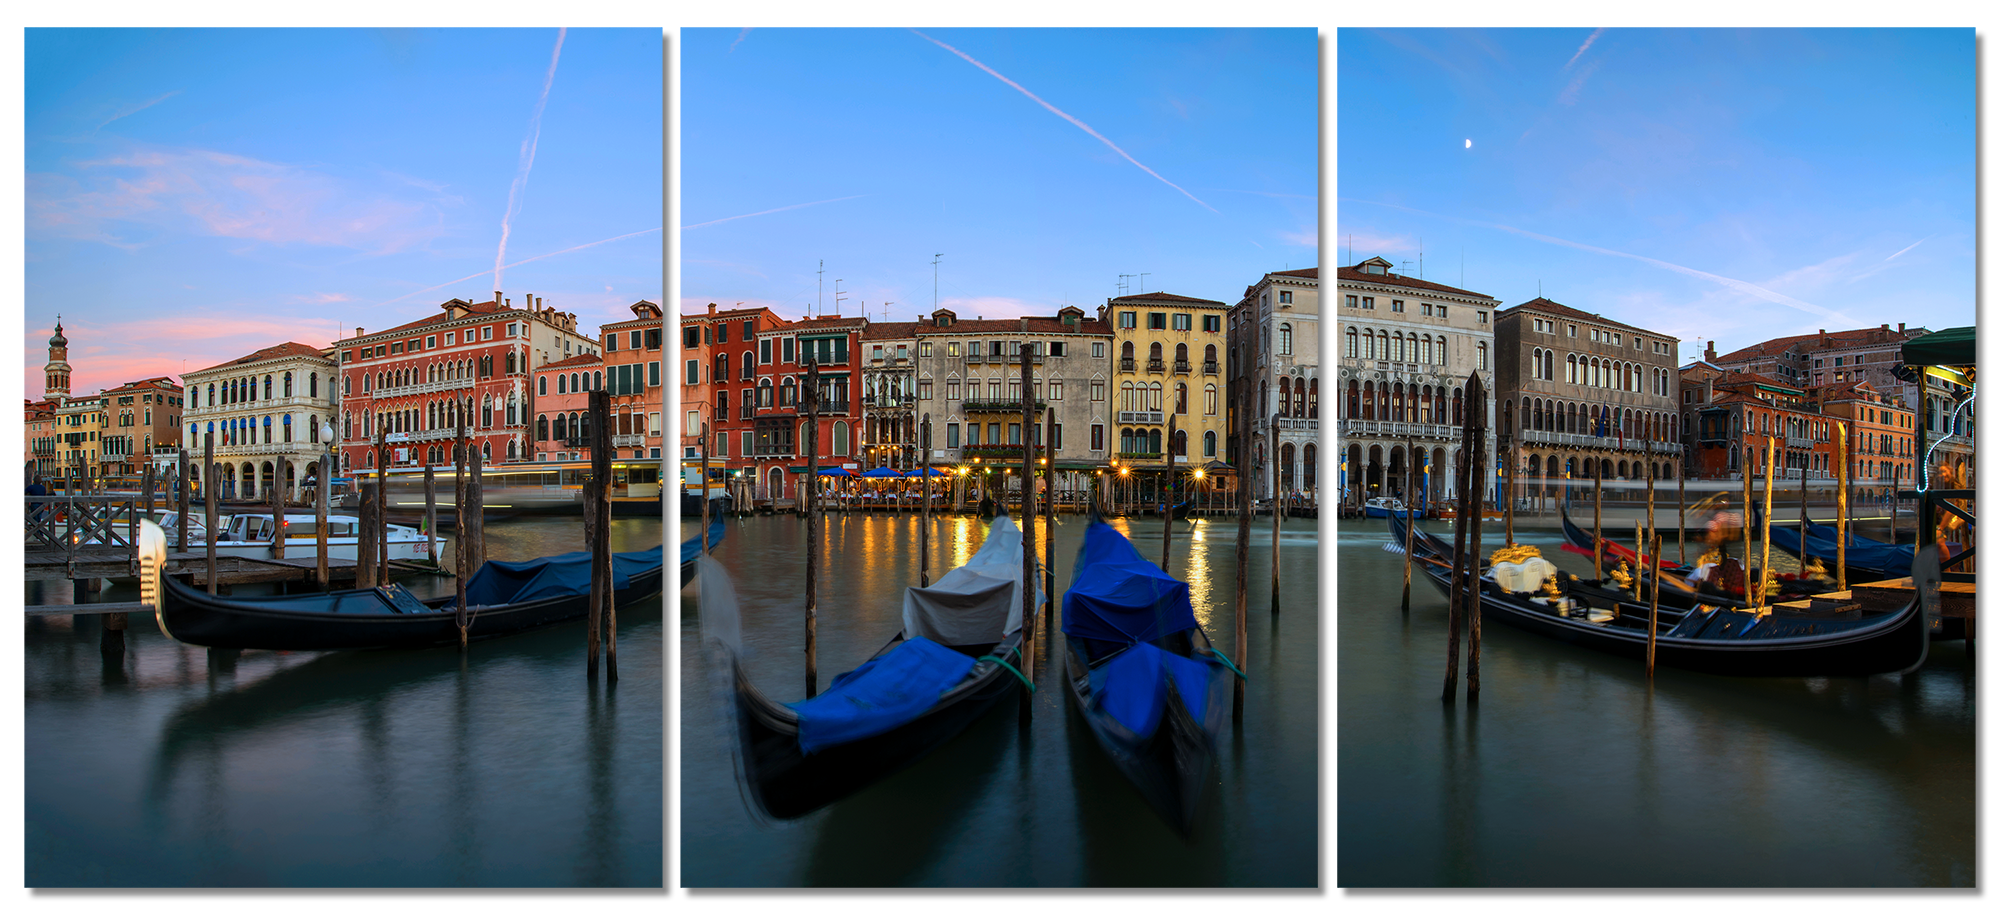 The grand canal venice italy 3 piece canvas wall art 20x27 overall 60x27 cmstq1